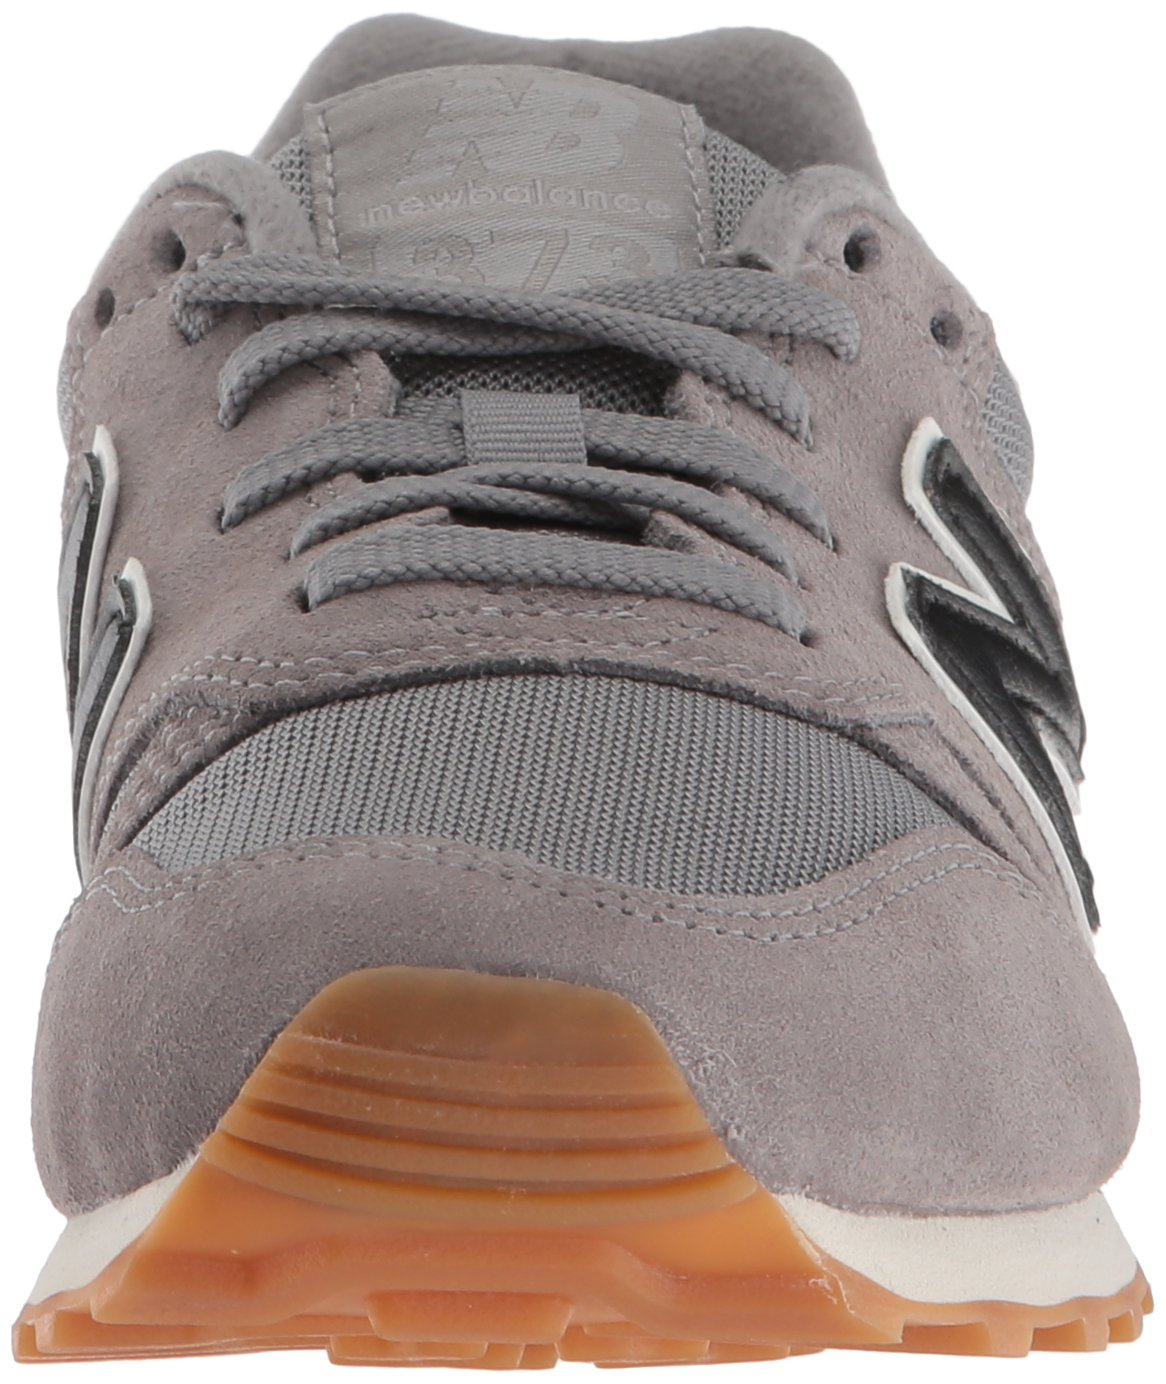 New Balance Men's D(M) 373V1 Sneaker B06XRWR4S9 9.5 D(M) Men's US|Grey/Black 163338